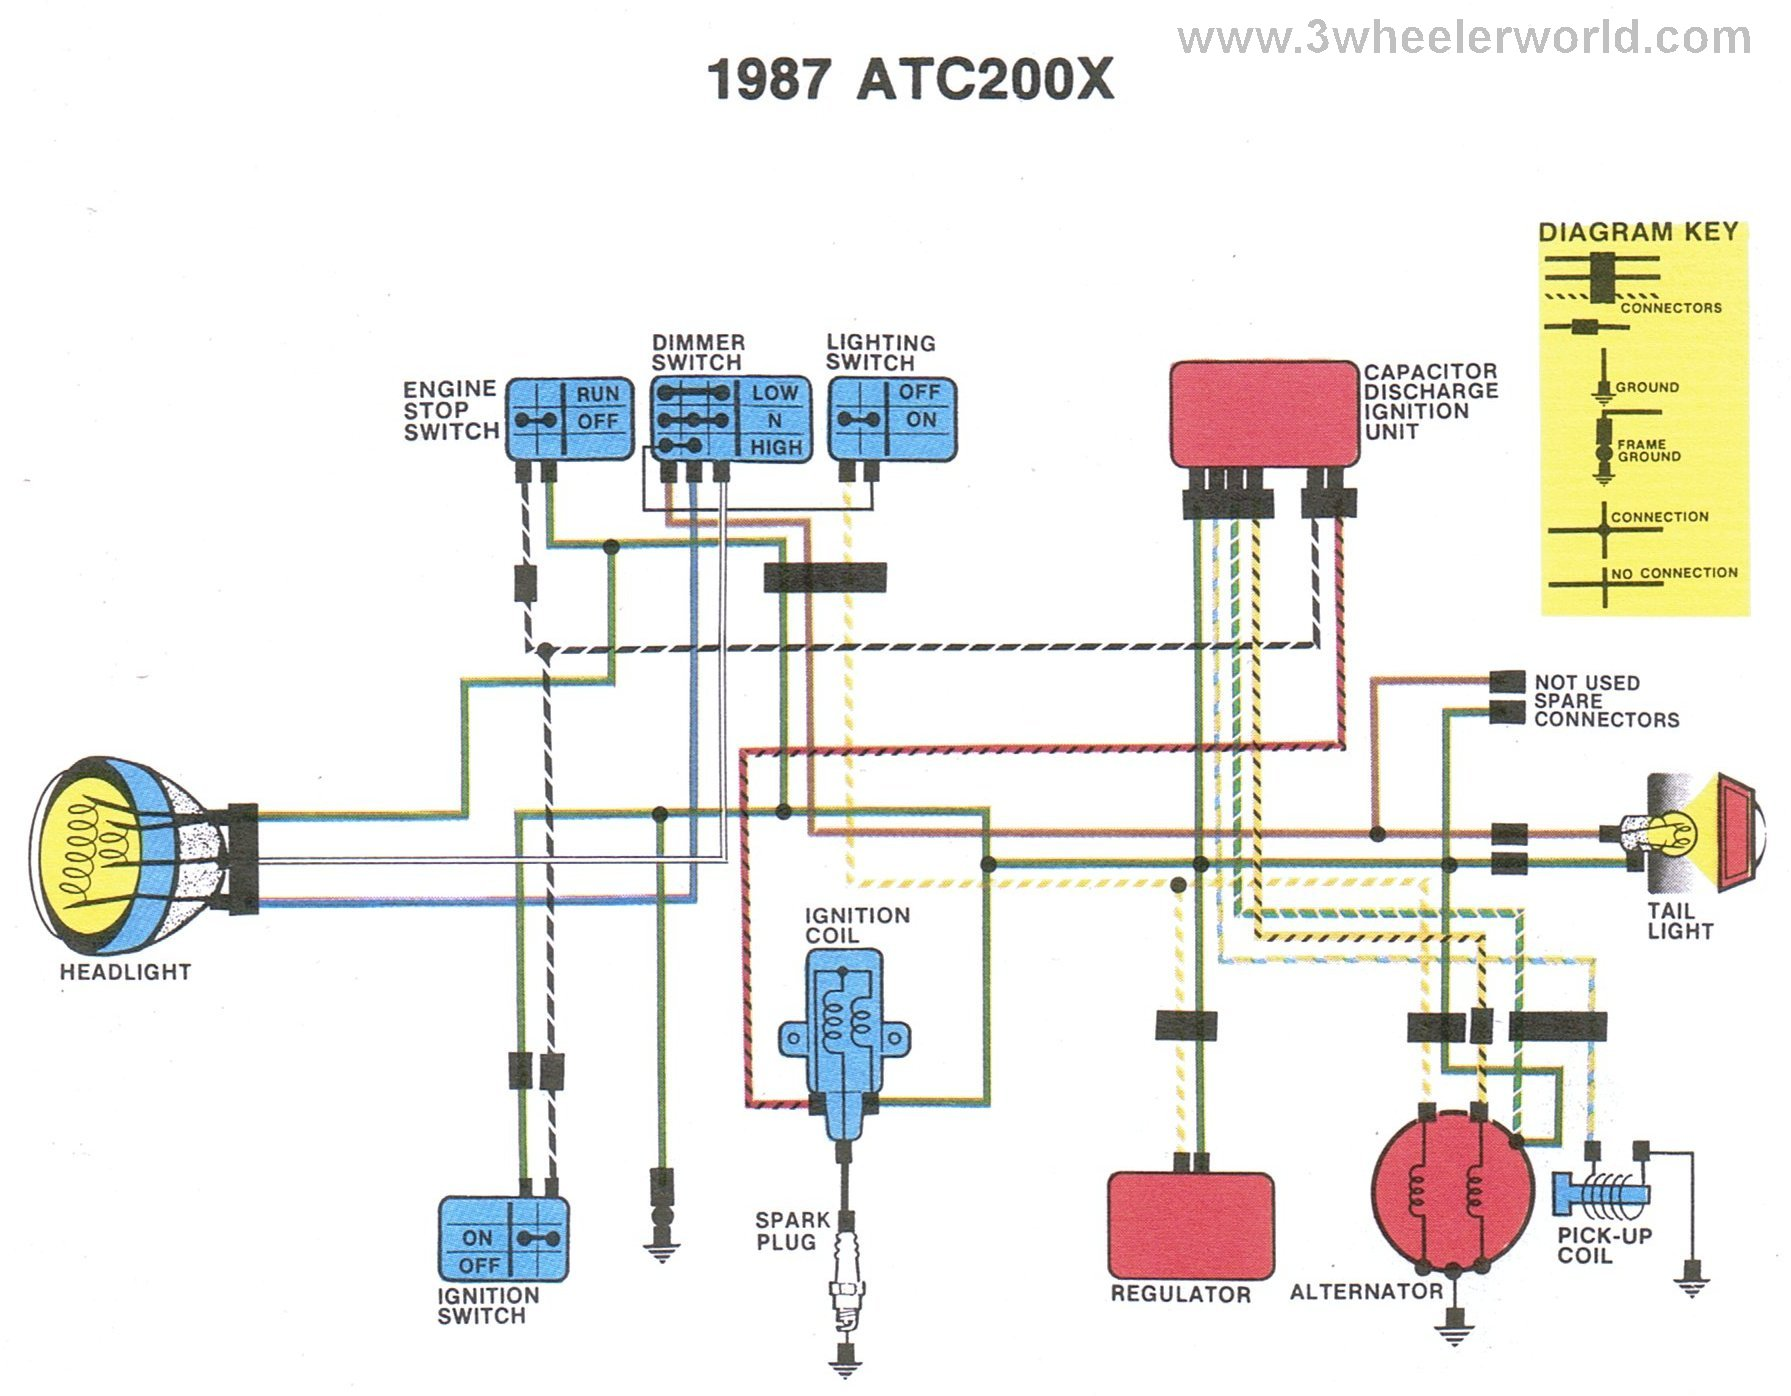 ATC200Xx87 3 wheeler world tech help honda wiring diagrams 1983 honda atc 200 wiring diagram at webbmarketing.co